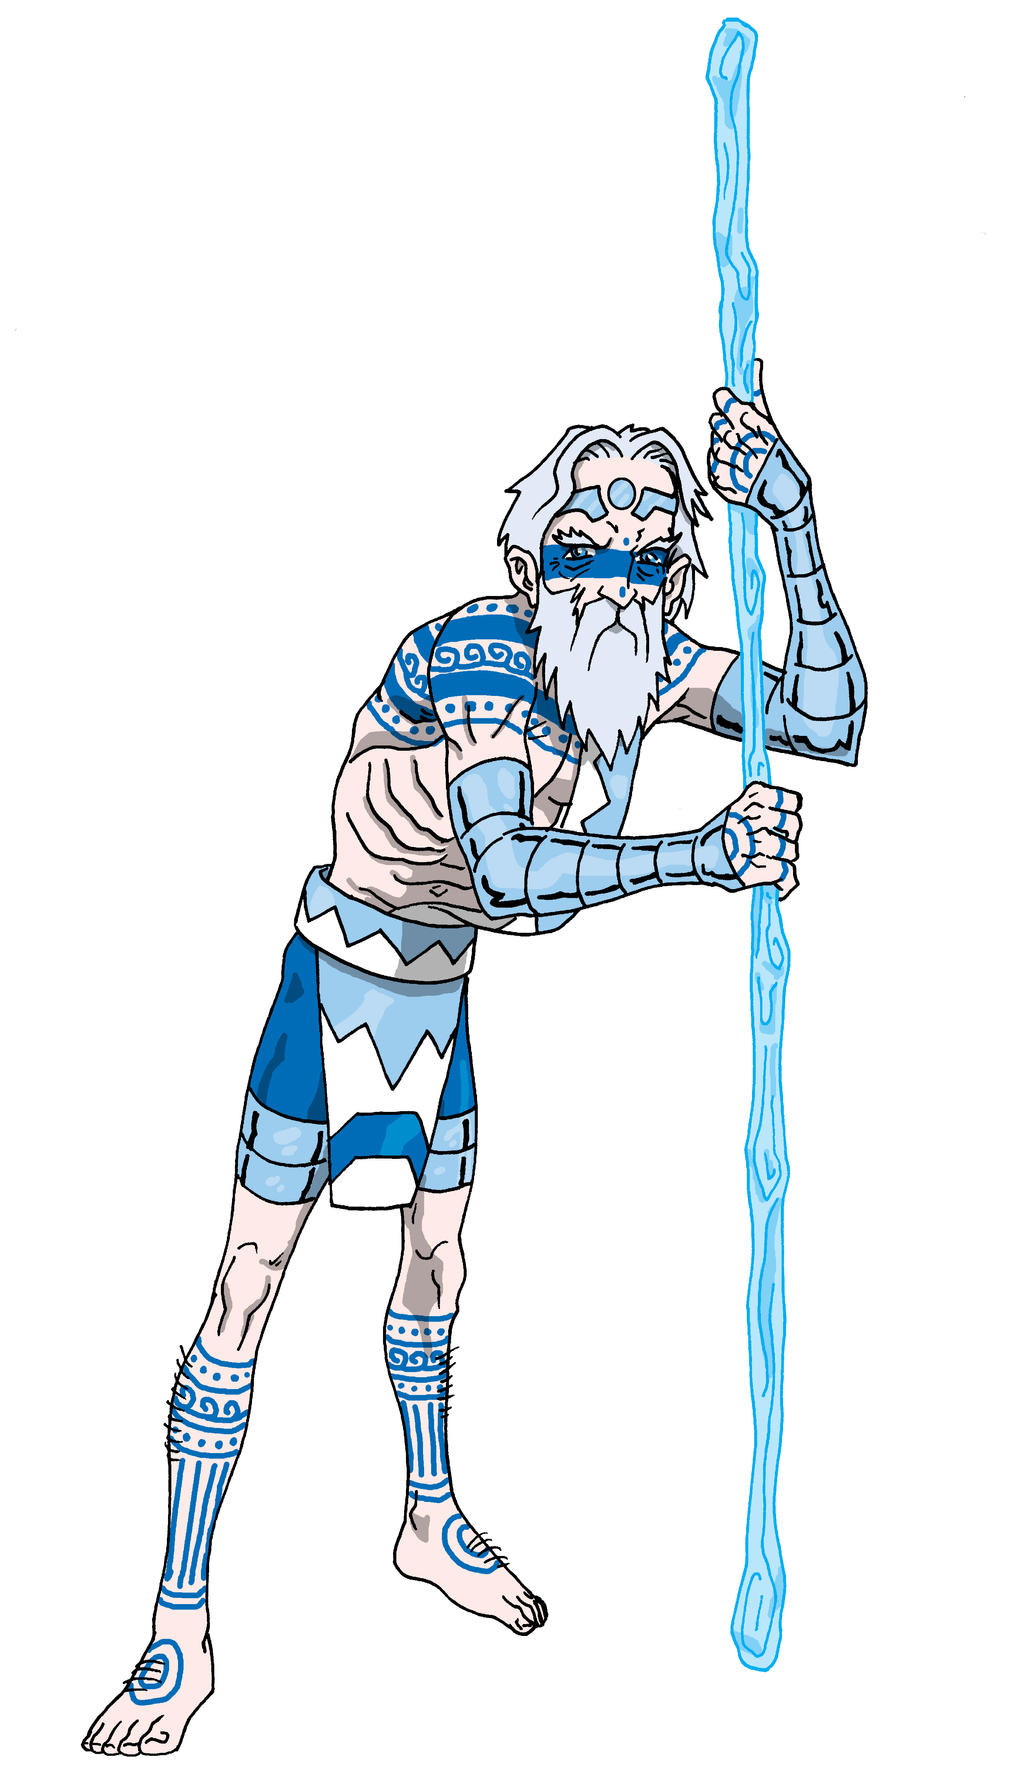 Old Man Winter 2016 by onecoyote